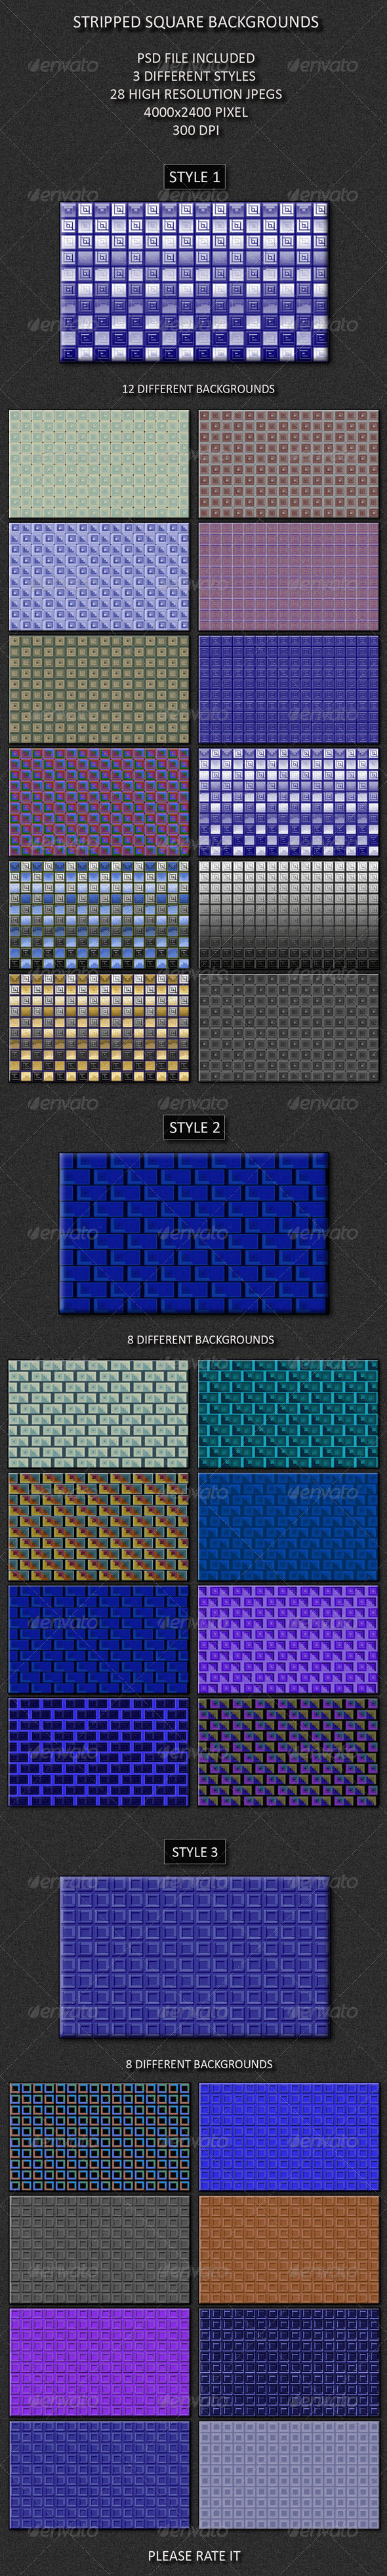 GraphicRiver Striped Square Backgrounds 4484007